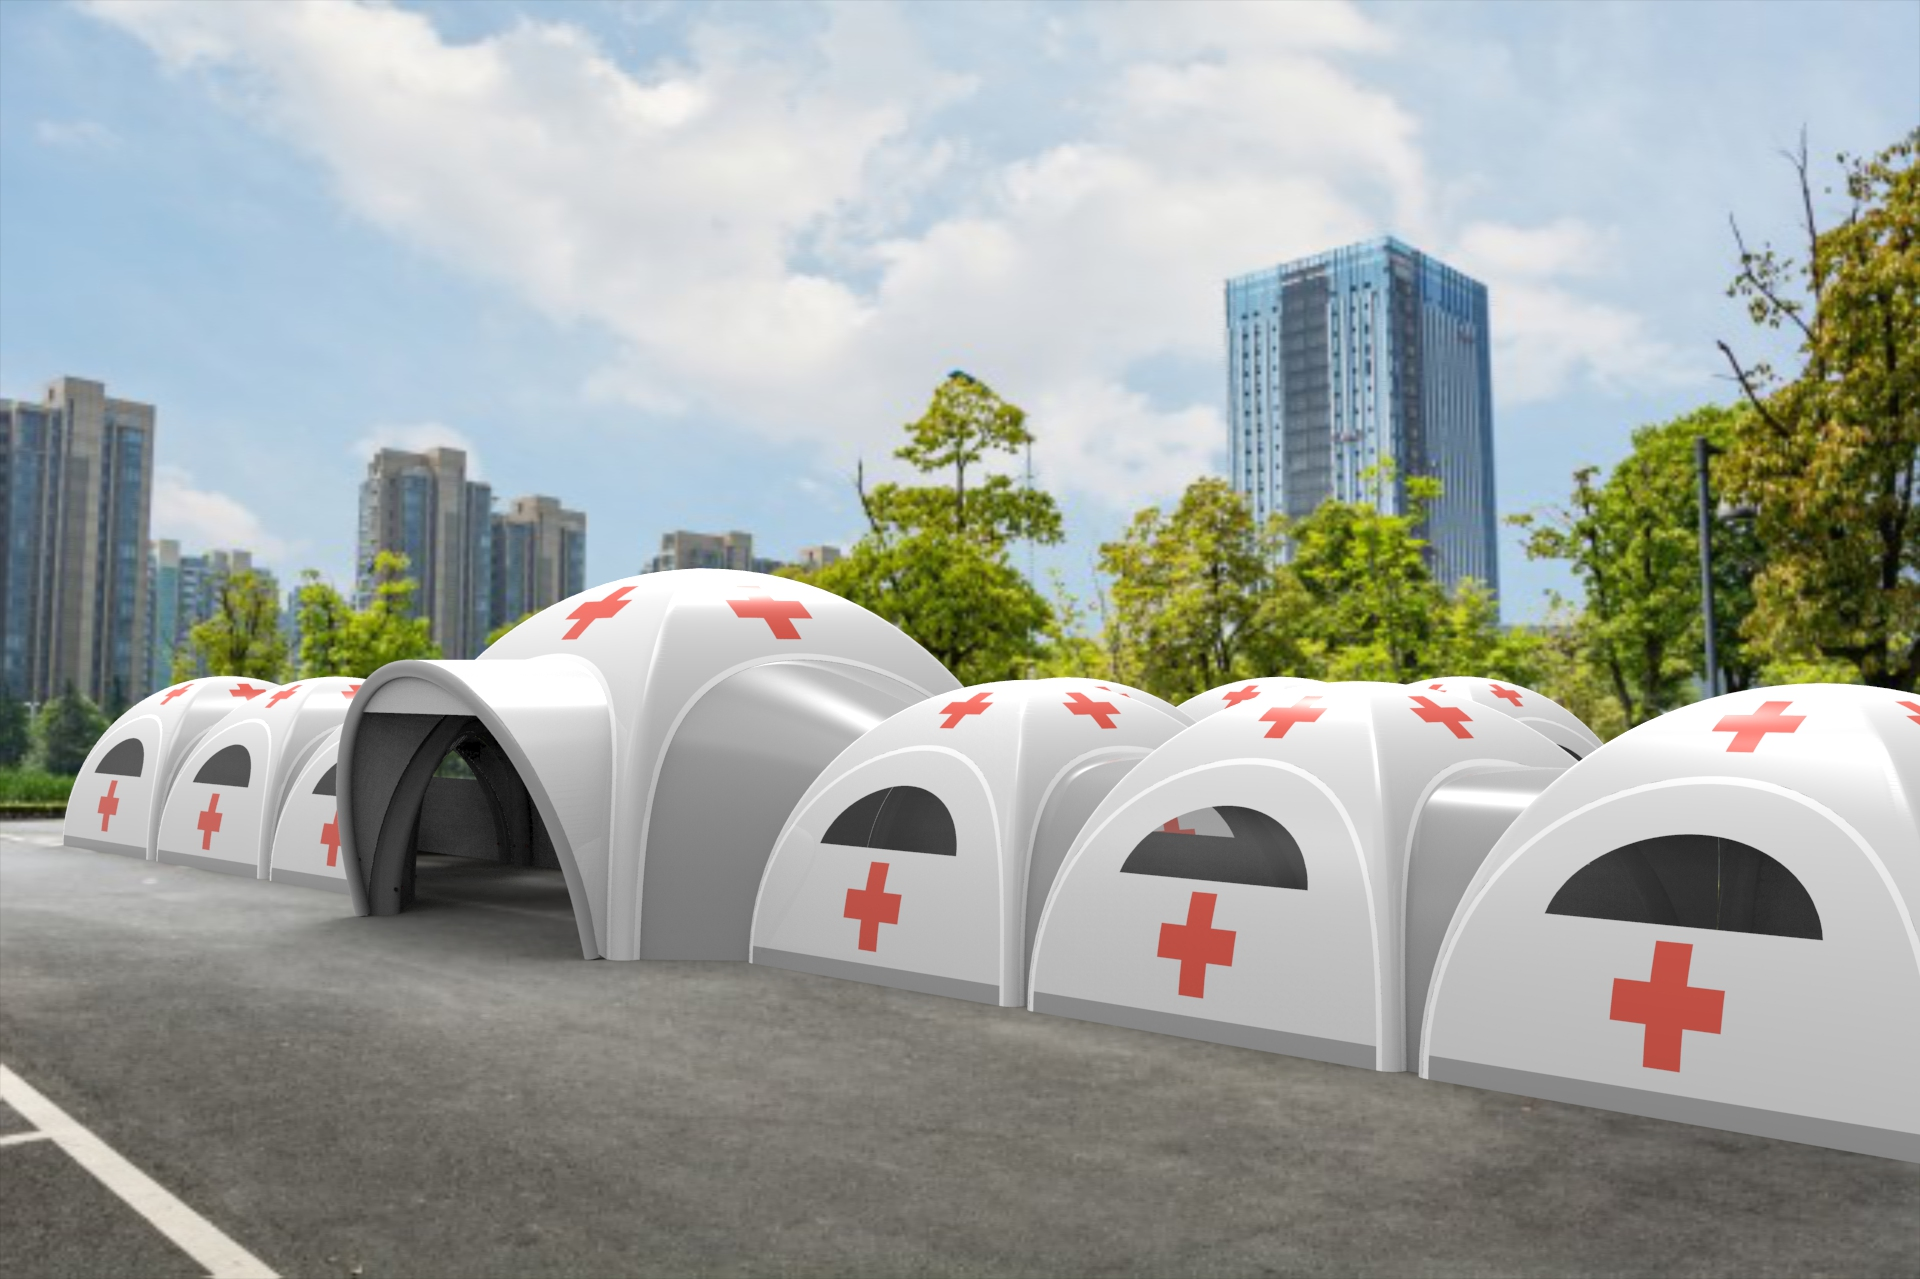 One of New inflatable medical rescue tent will be released by CATC outdoor to help together to prevent the coronavirus!